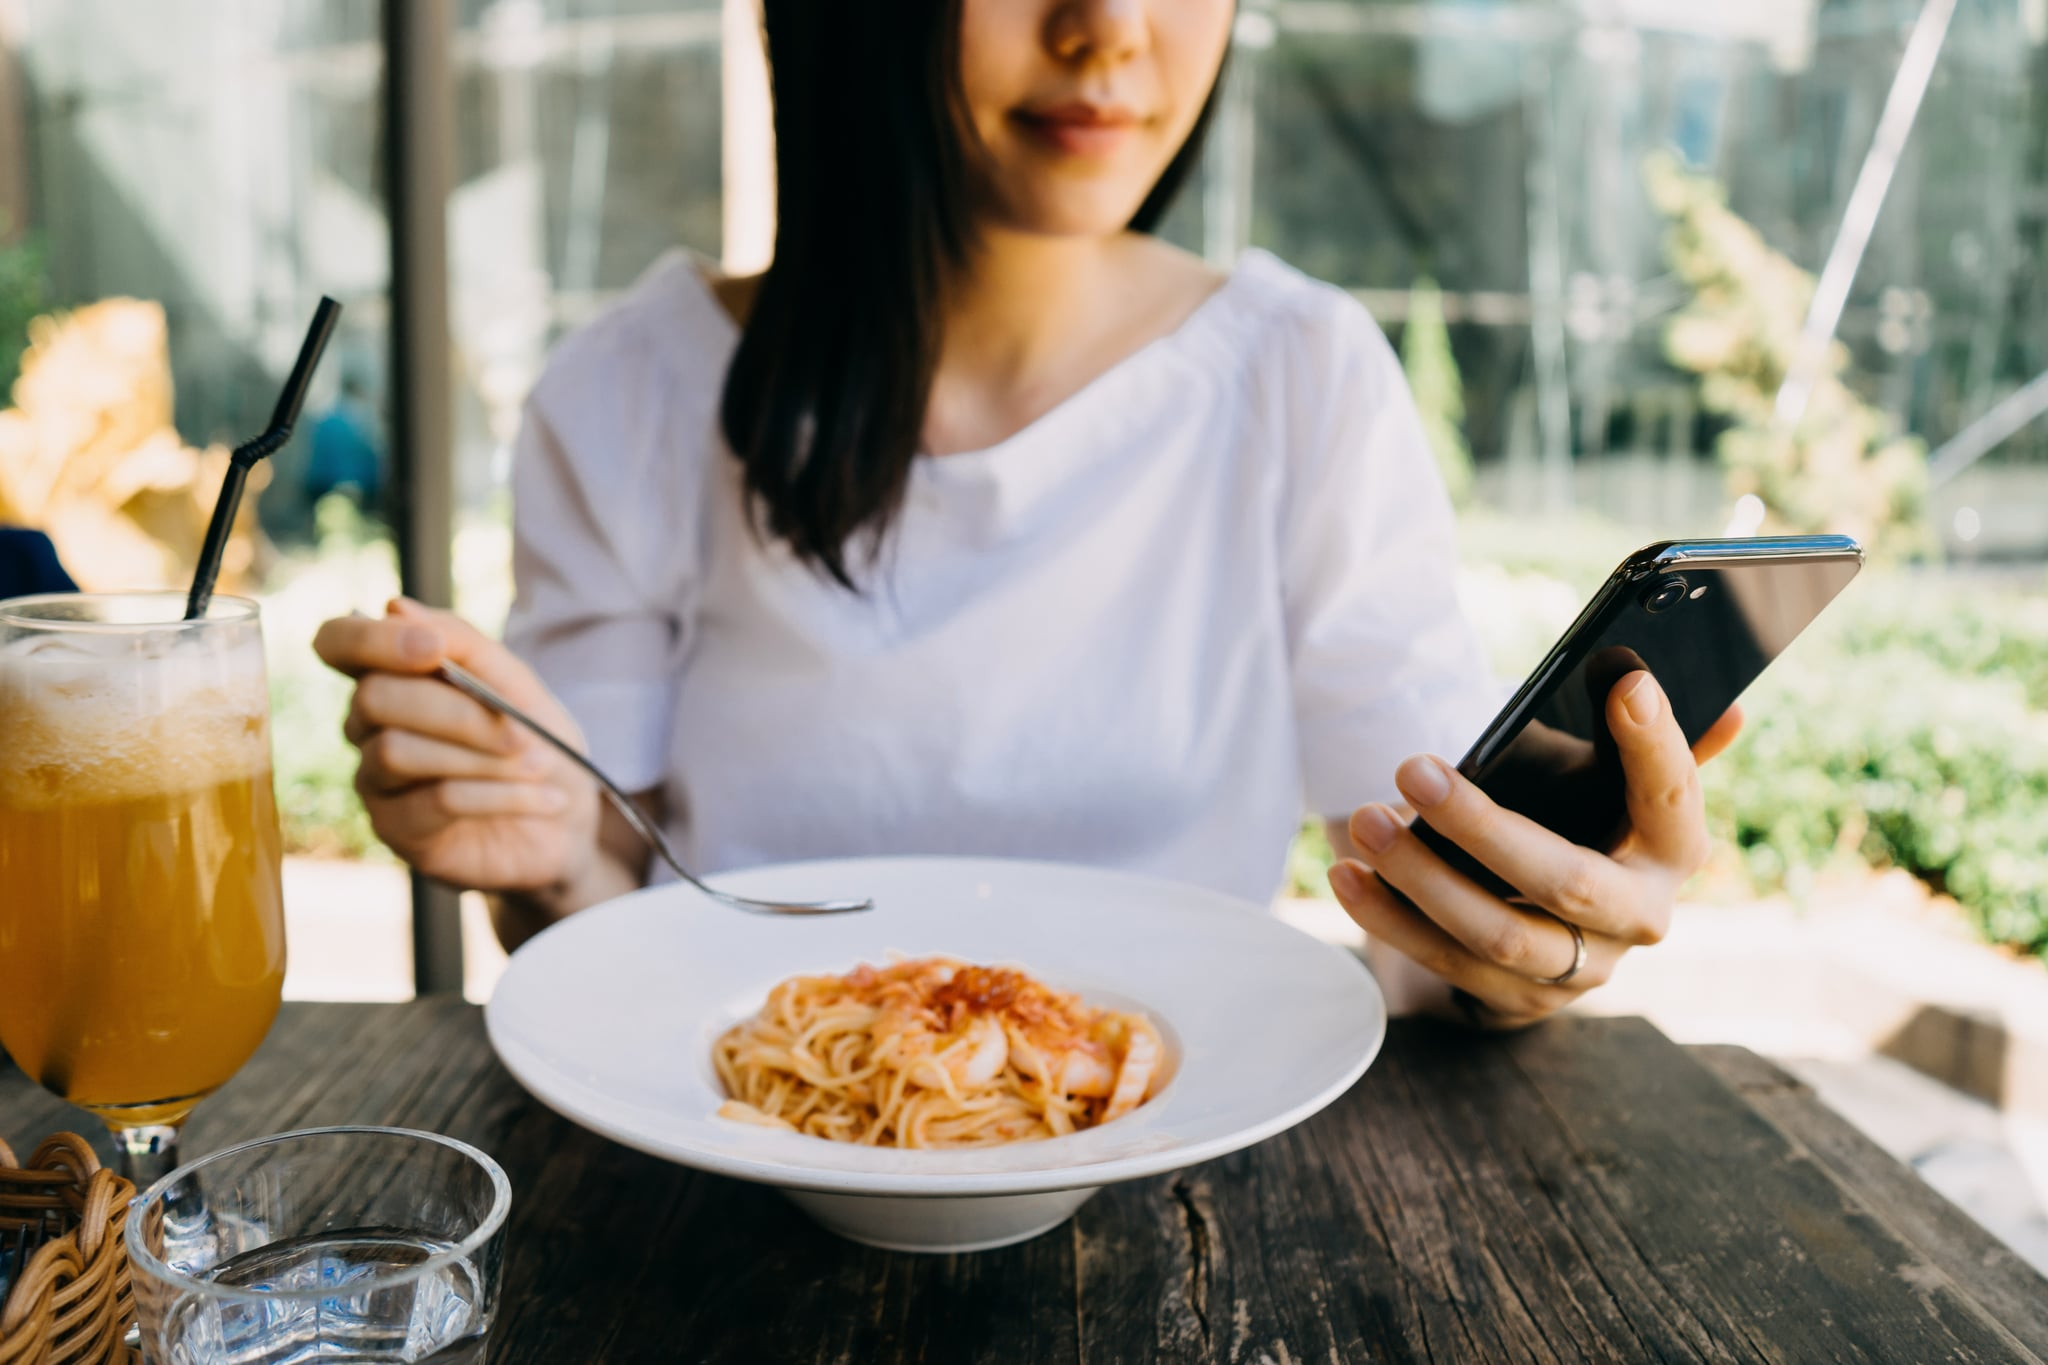 Smiling woman using her mobile phone while having meal at a cafe outdoors